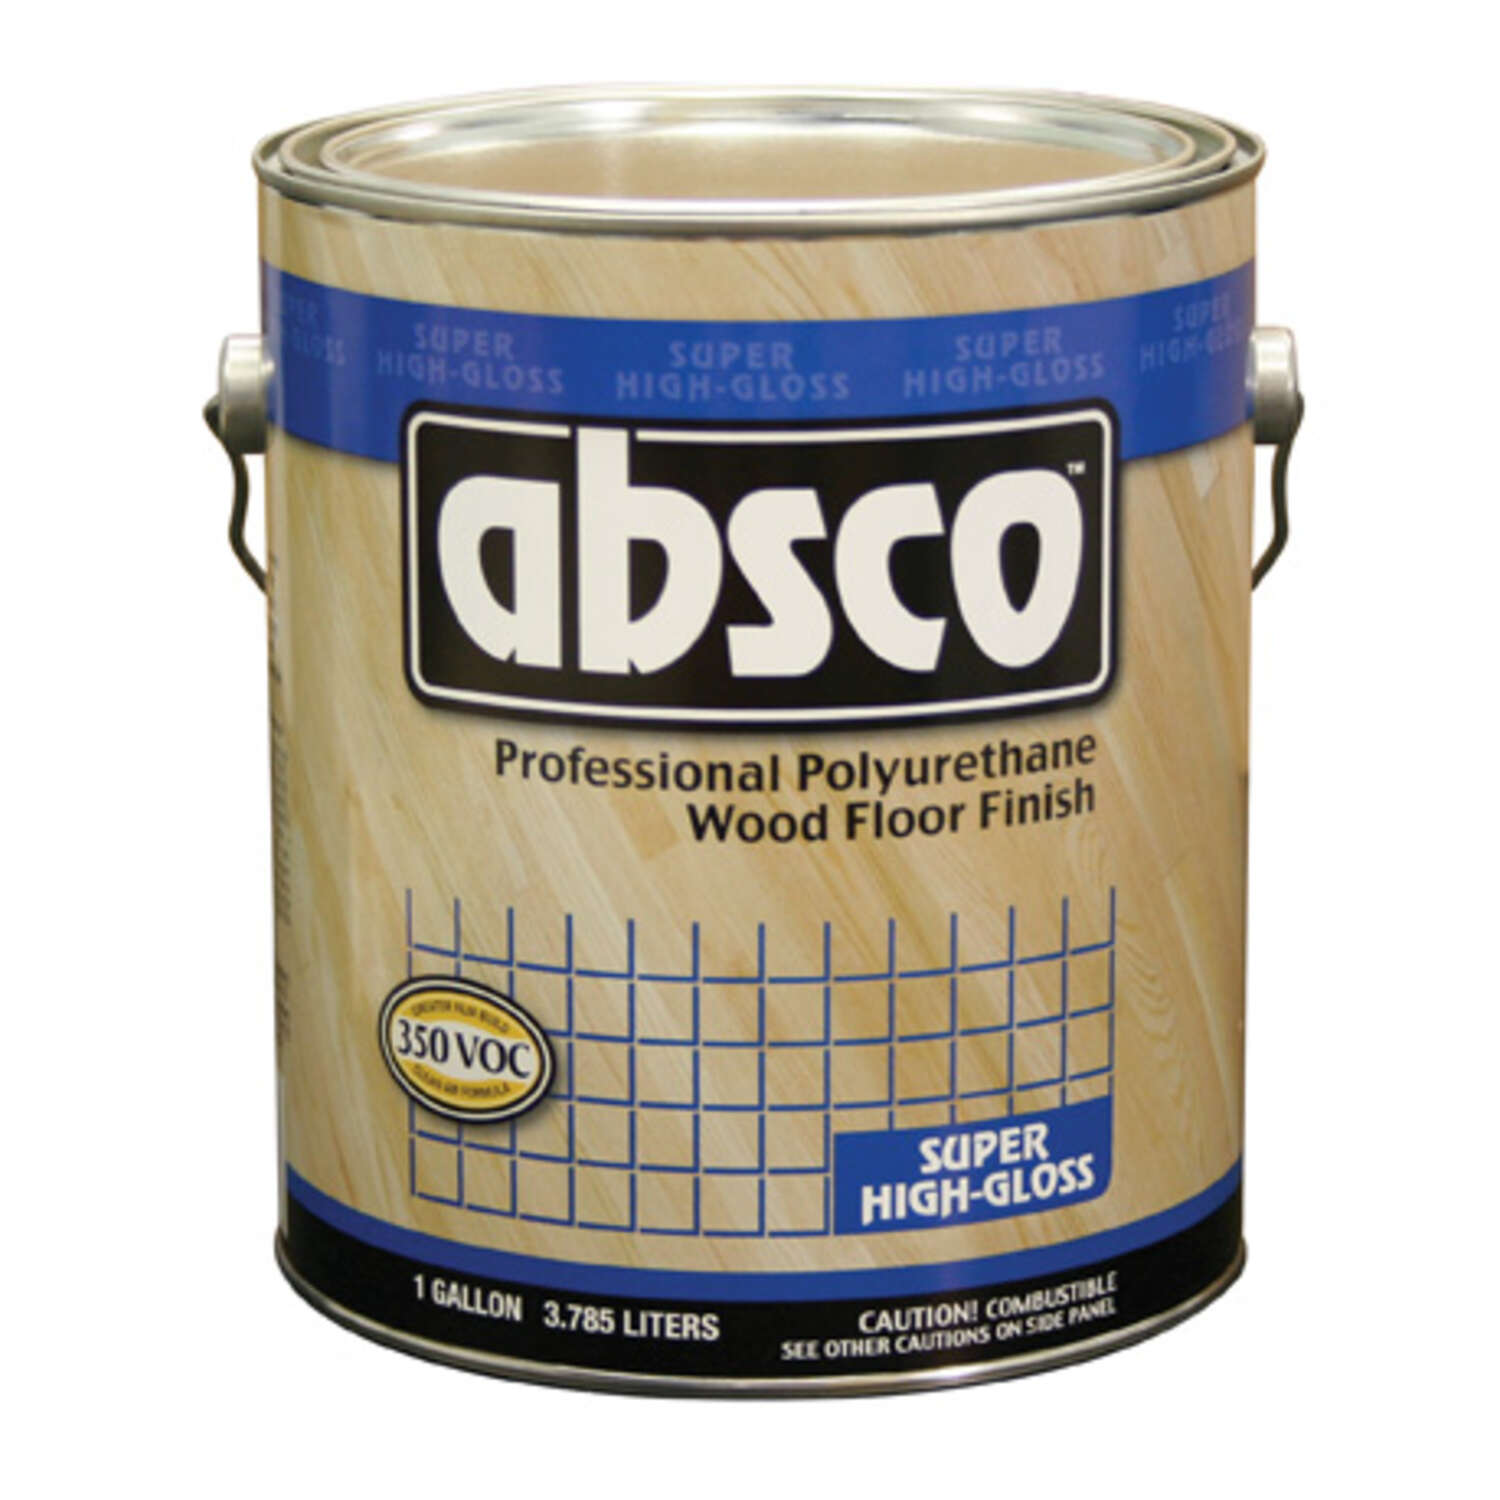 Absco  Super High-Gloss  Clear  Polyurethane Wood Floor Finish  1 gal.